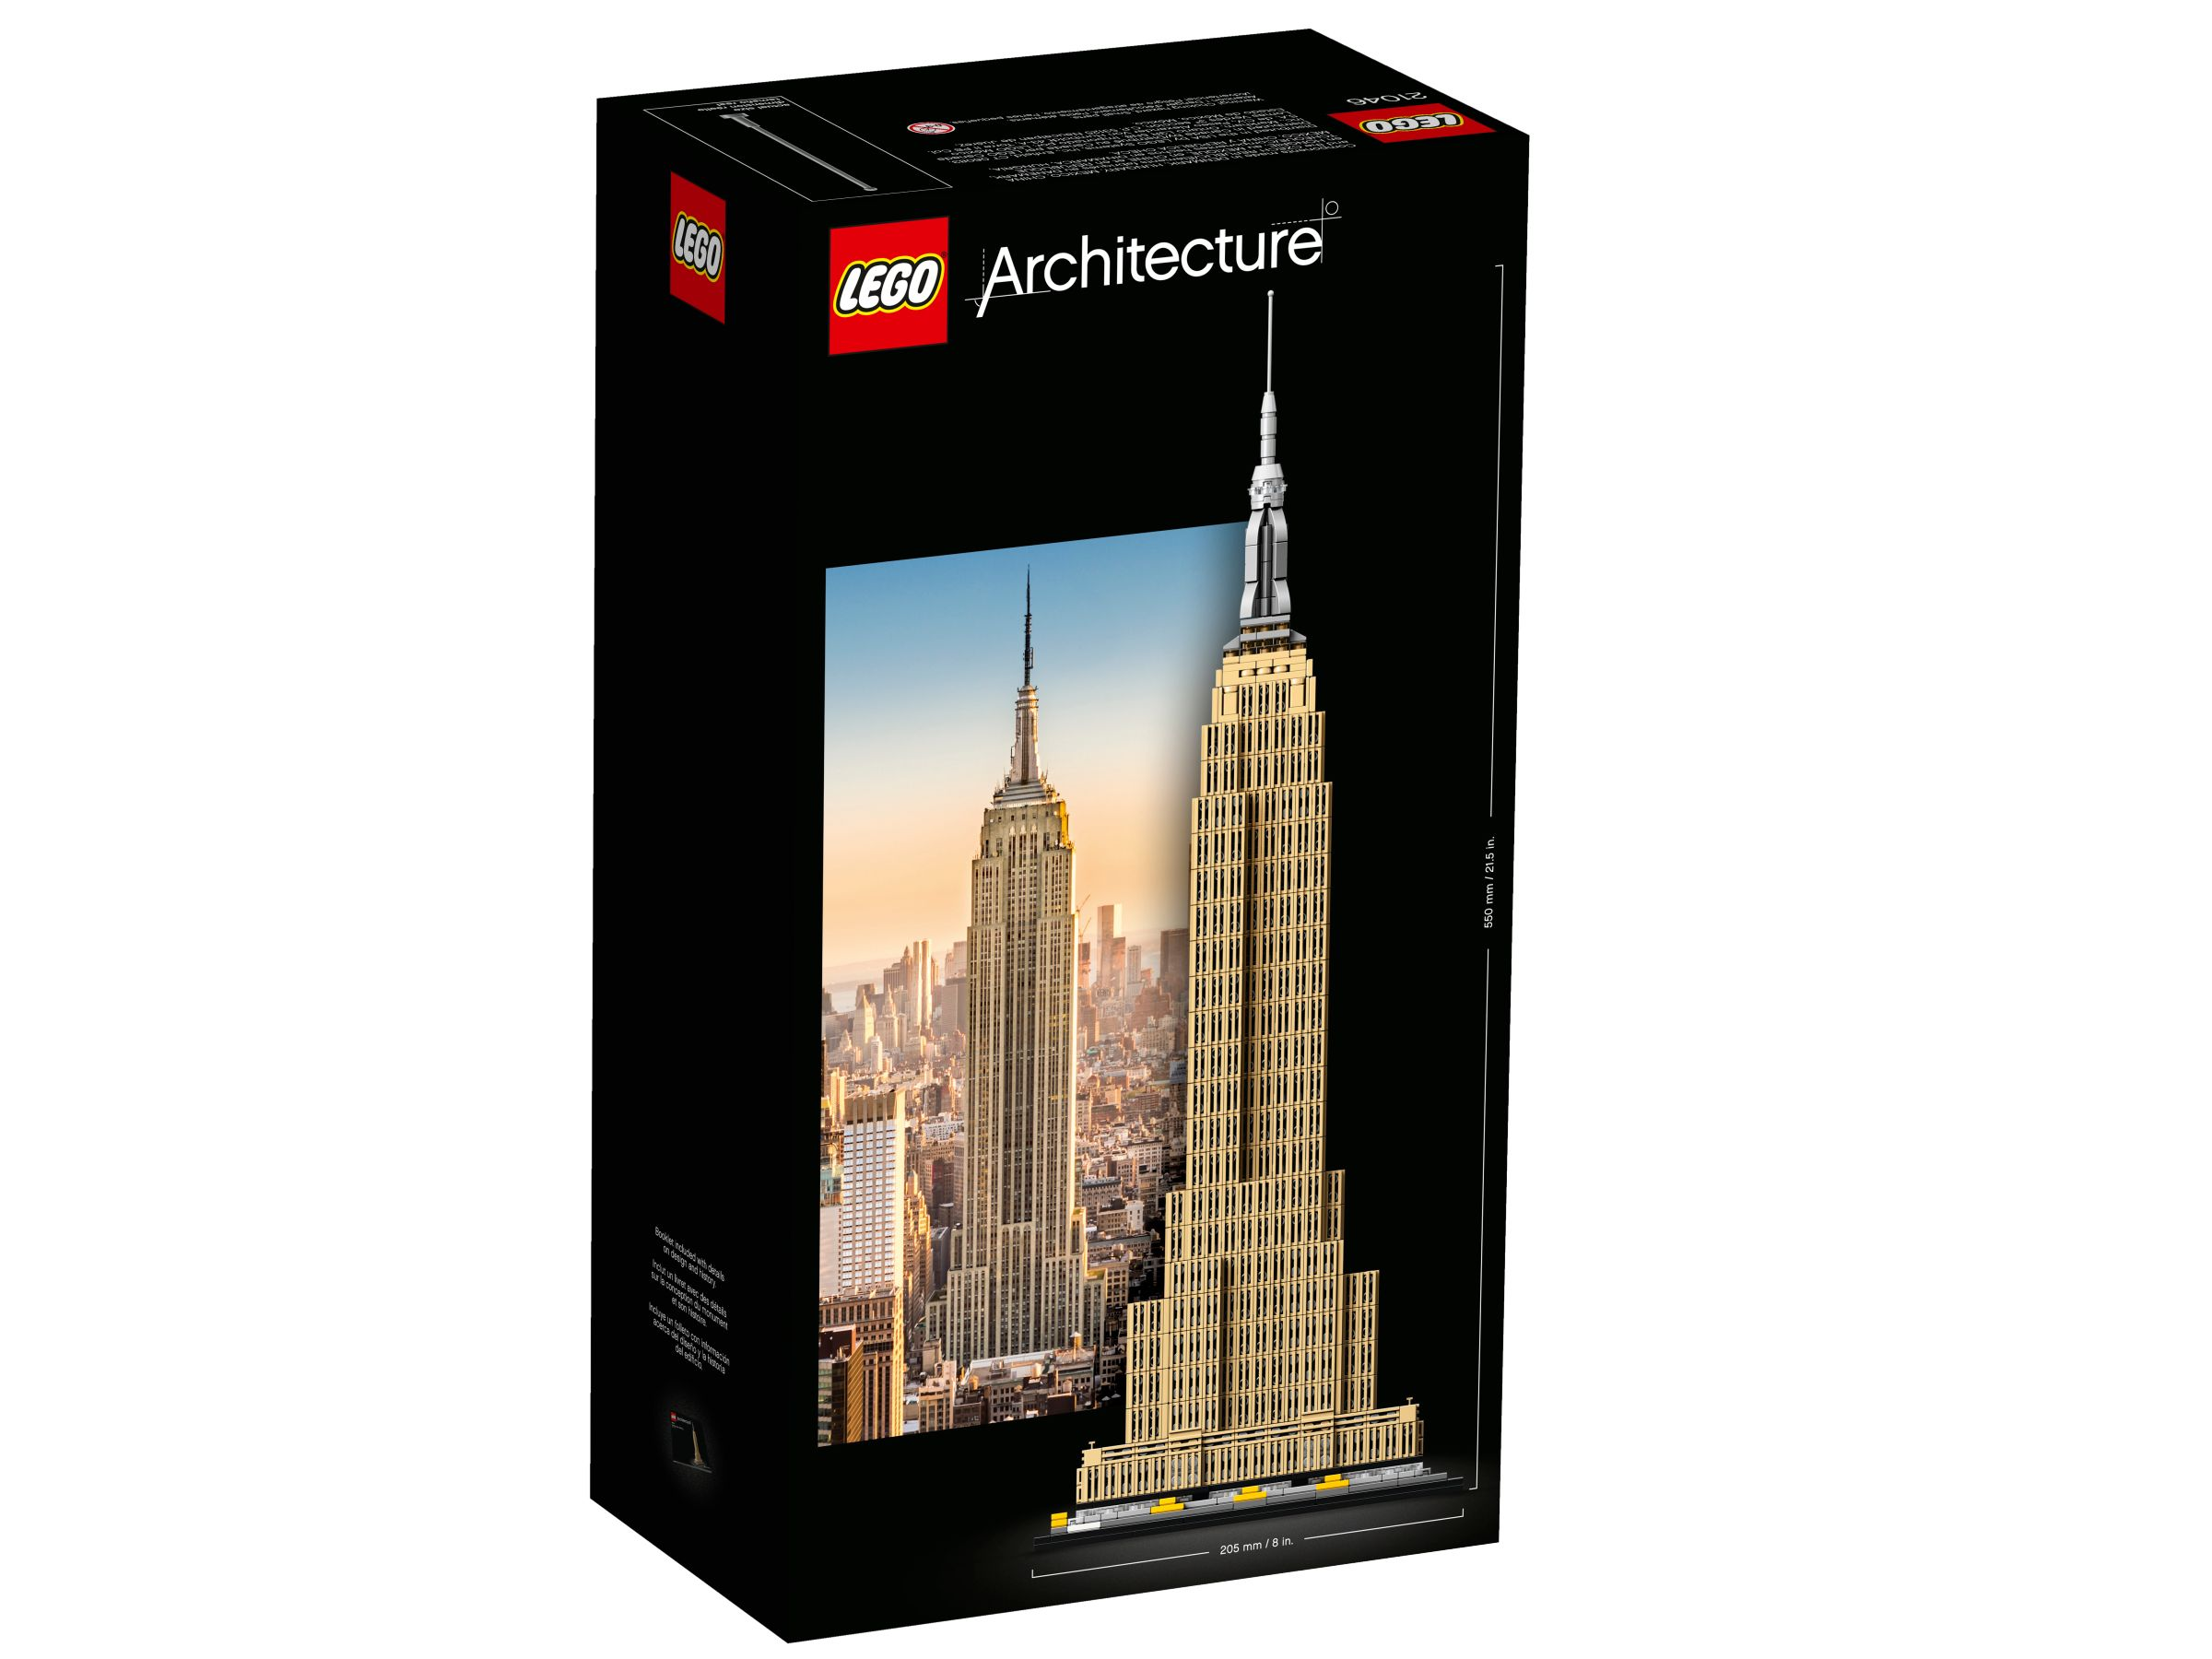 LEGO Architecture 21046 Empire State Building LEGO_21046_alt4.jpg